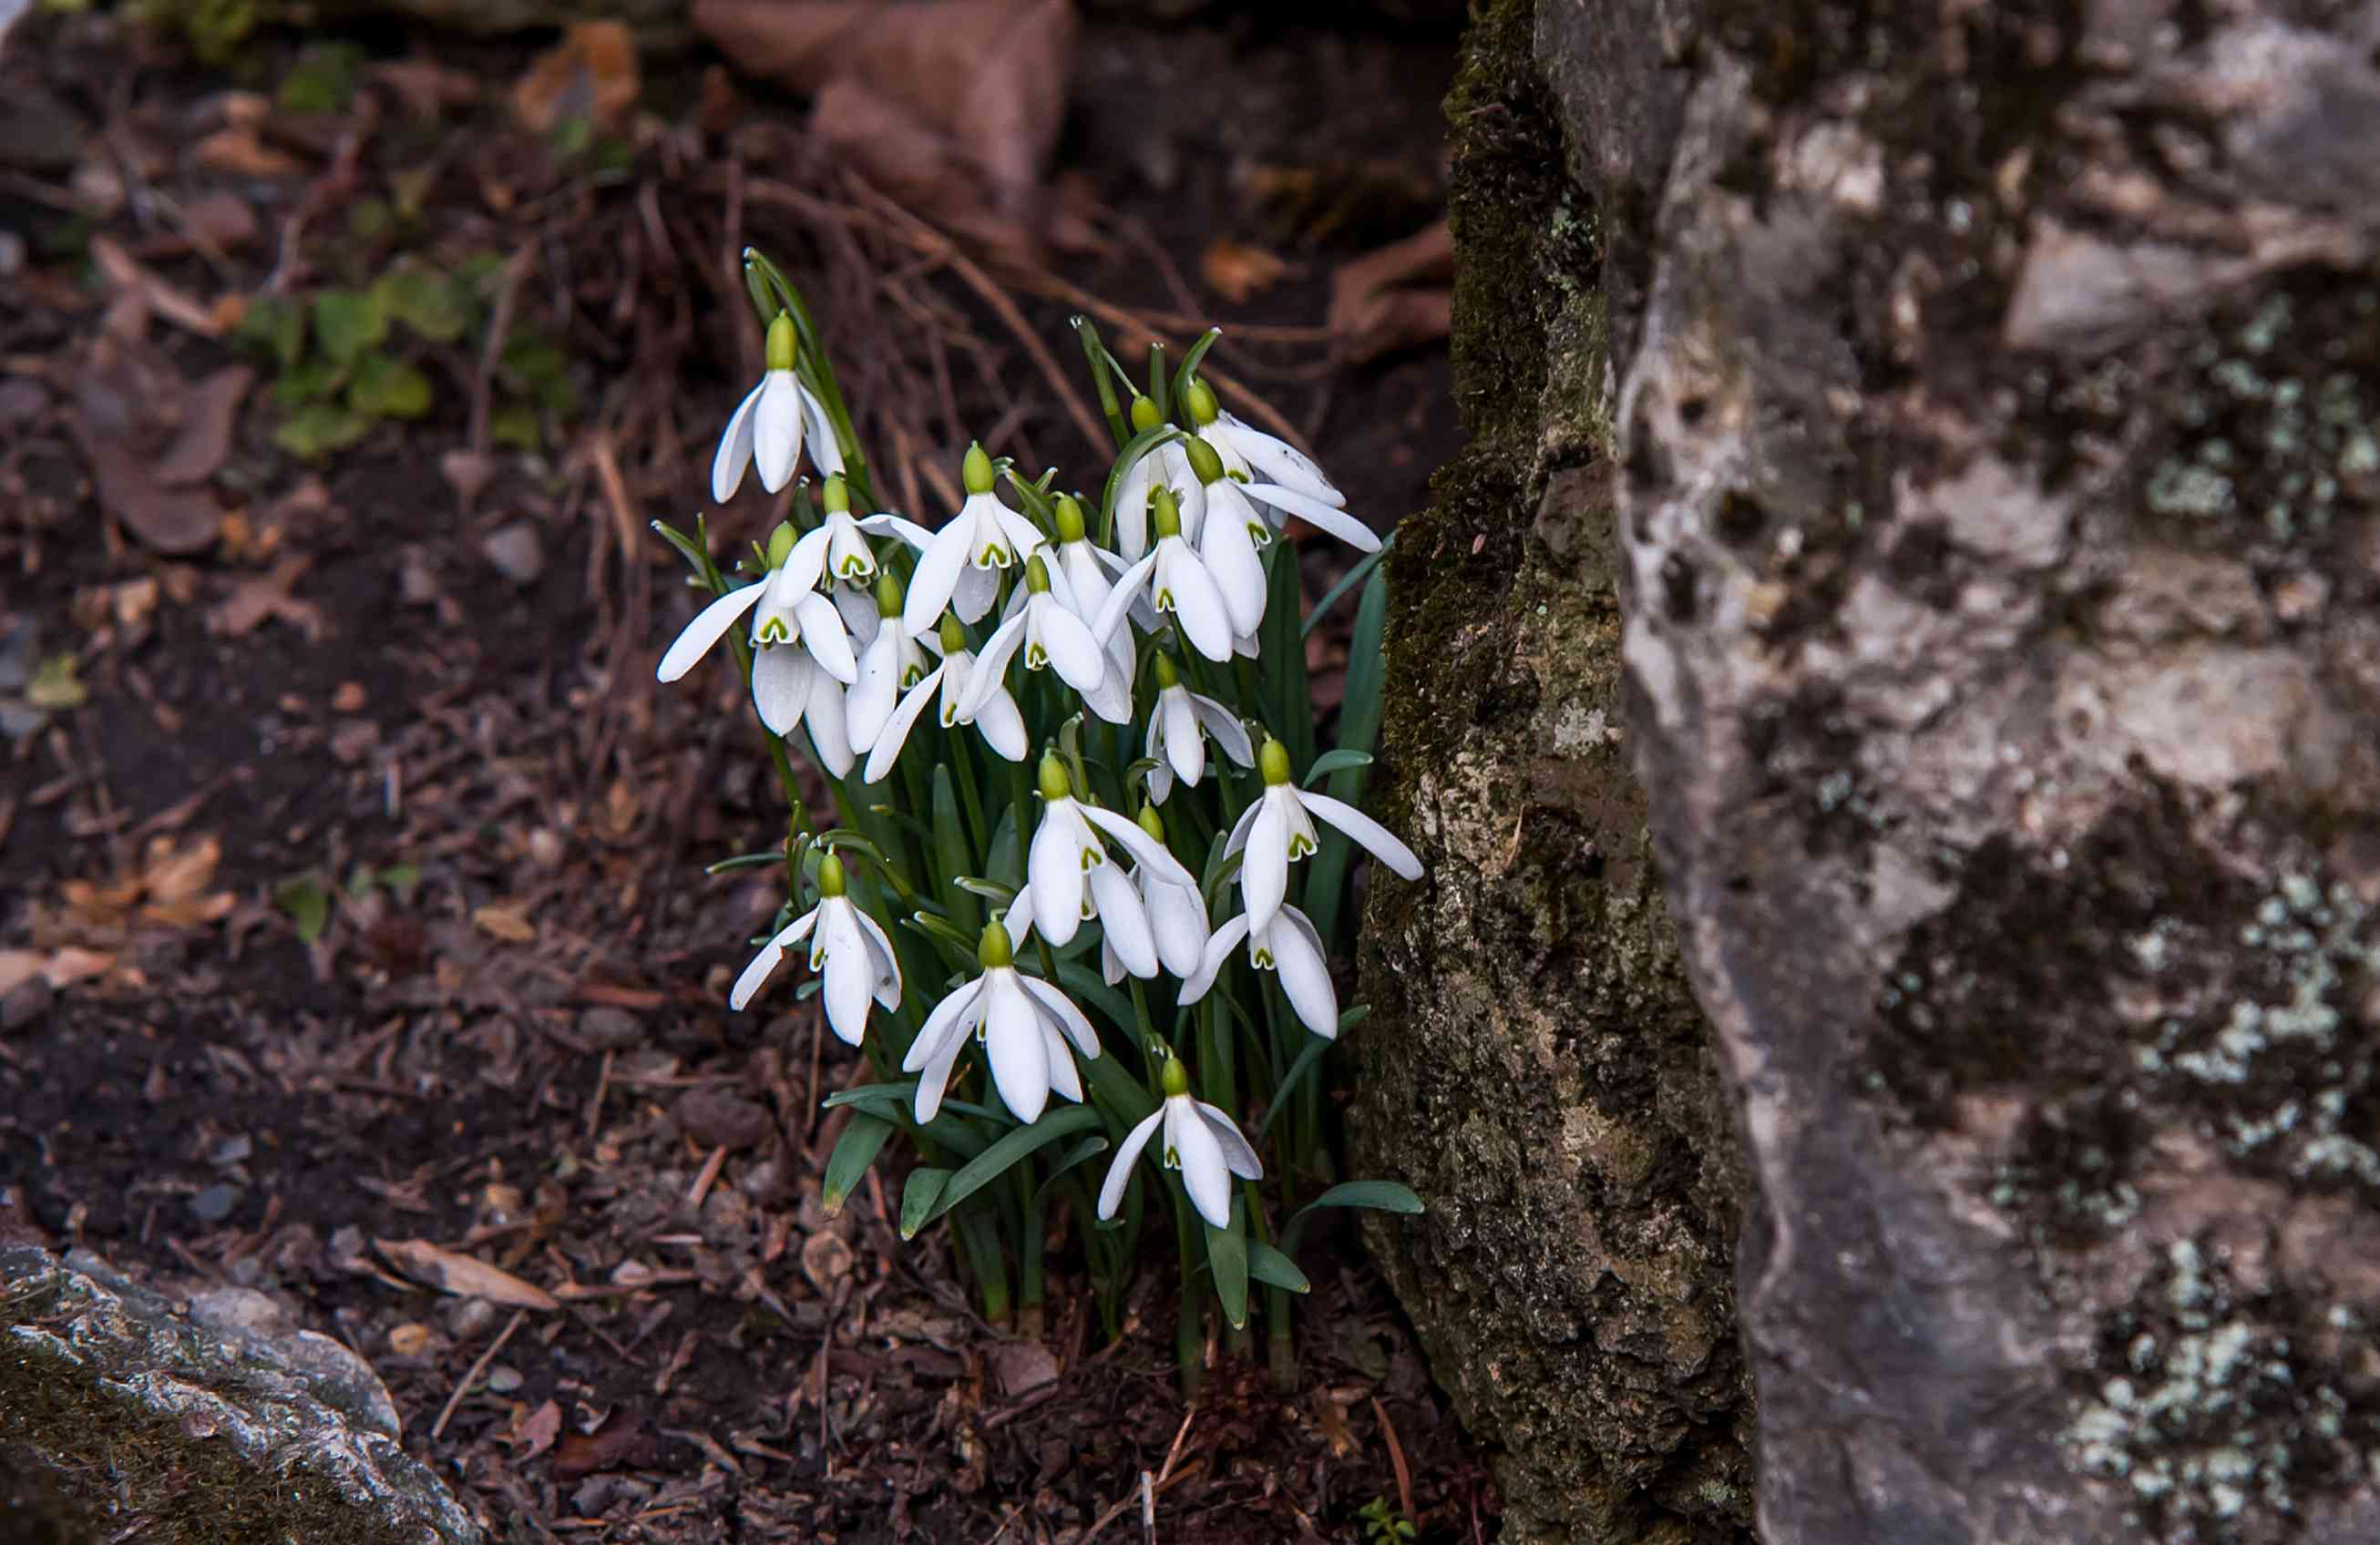 Snowdrop galanthus nivalis plant on side of large rock with small white flowers